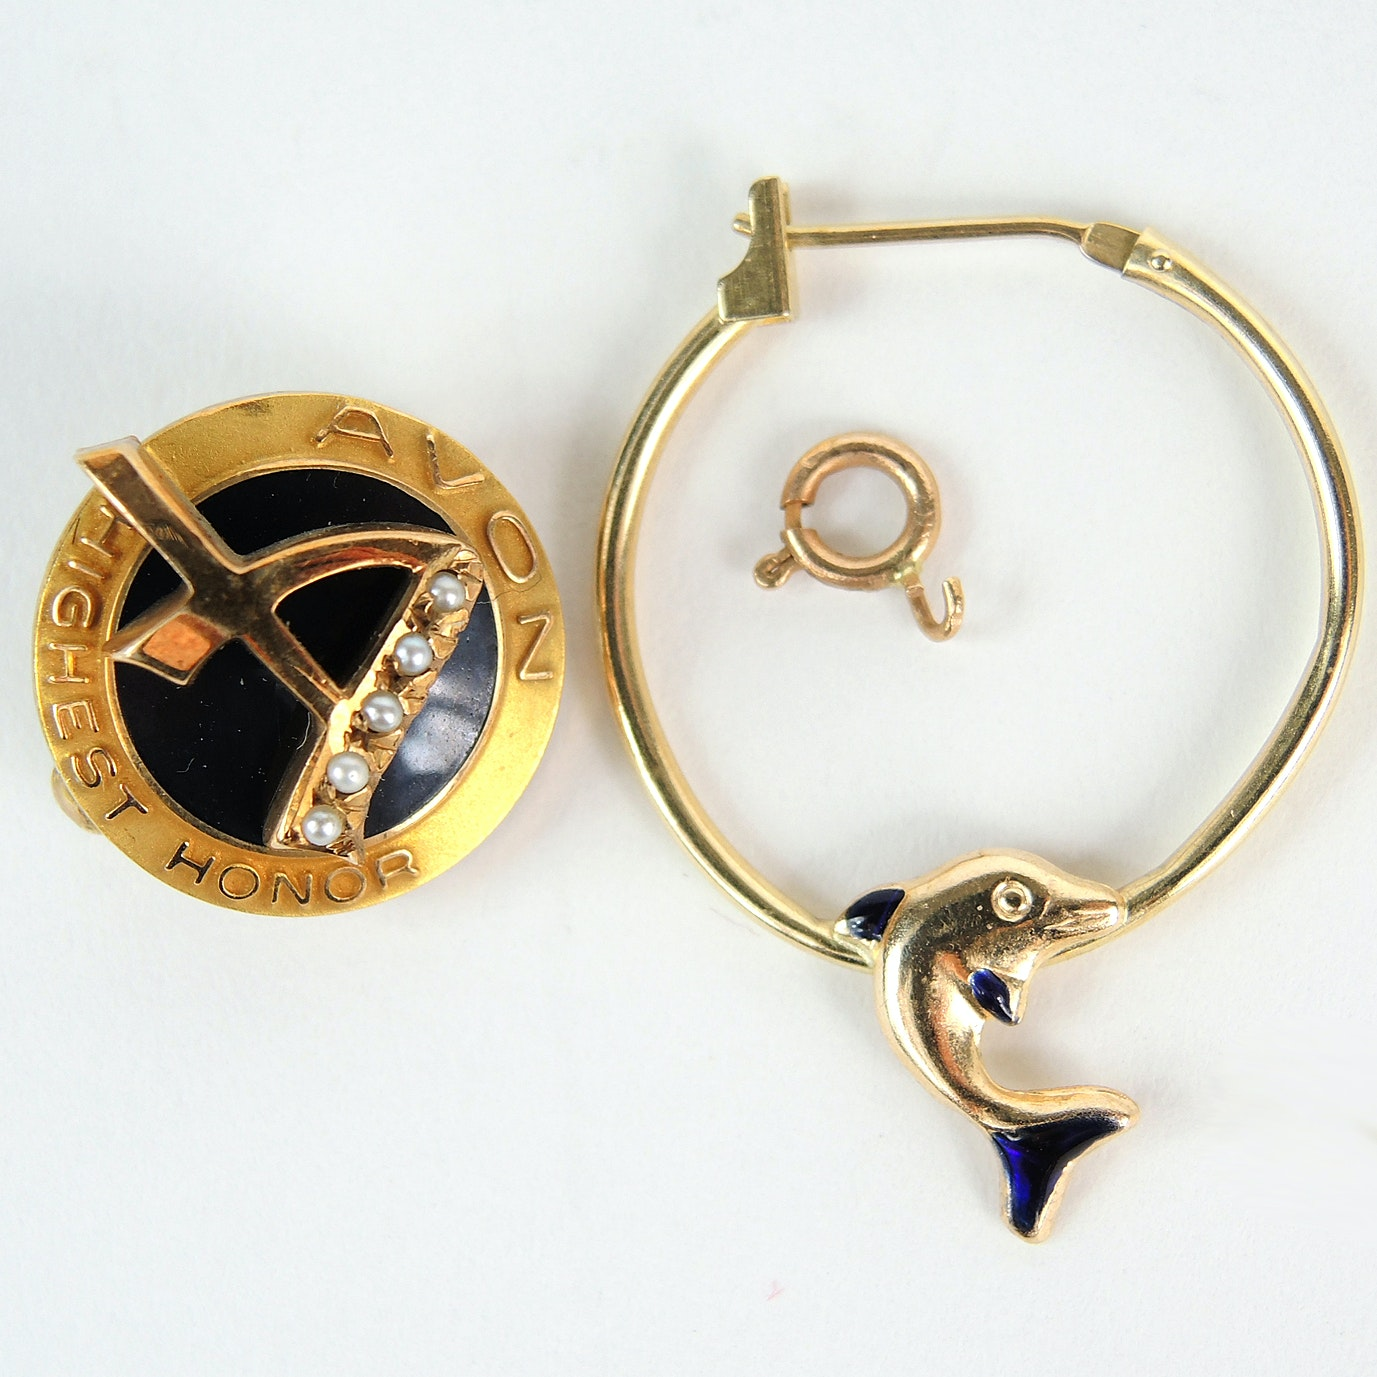 Scrap 14K, 10K Gold with Avon Highest Honor Pearl and Onyx Pin